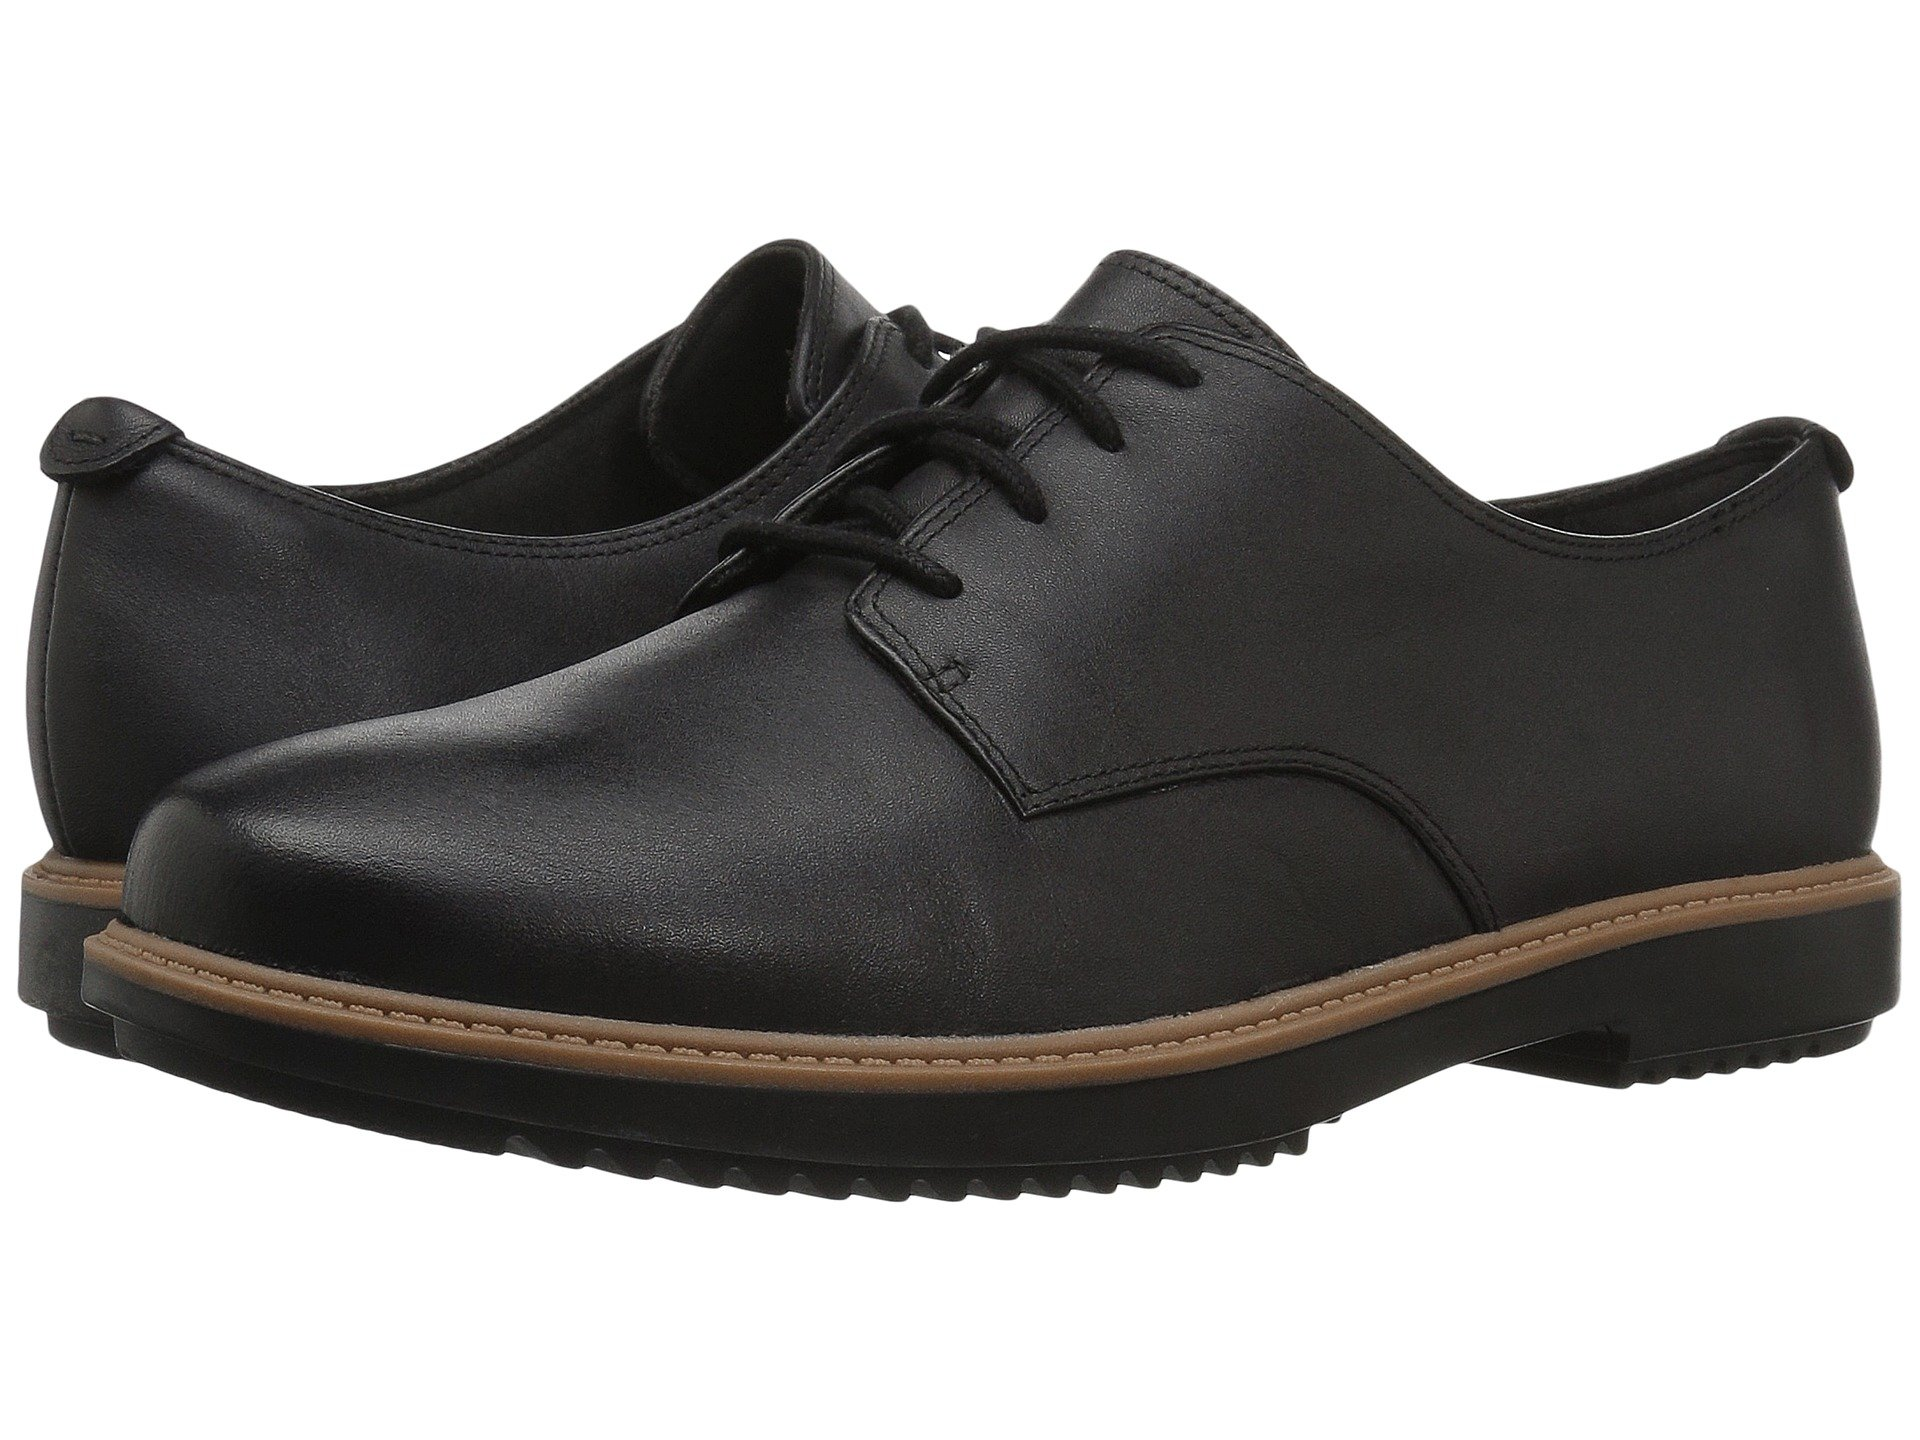 c161be05b Women's Oxfords + FREE SHIPPING | Shoes | Zappos.com